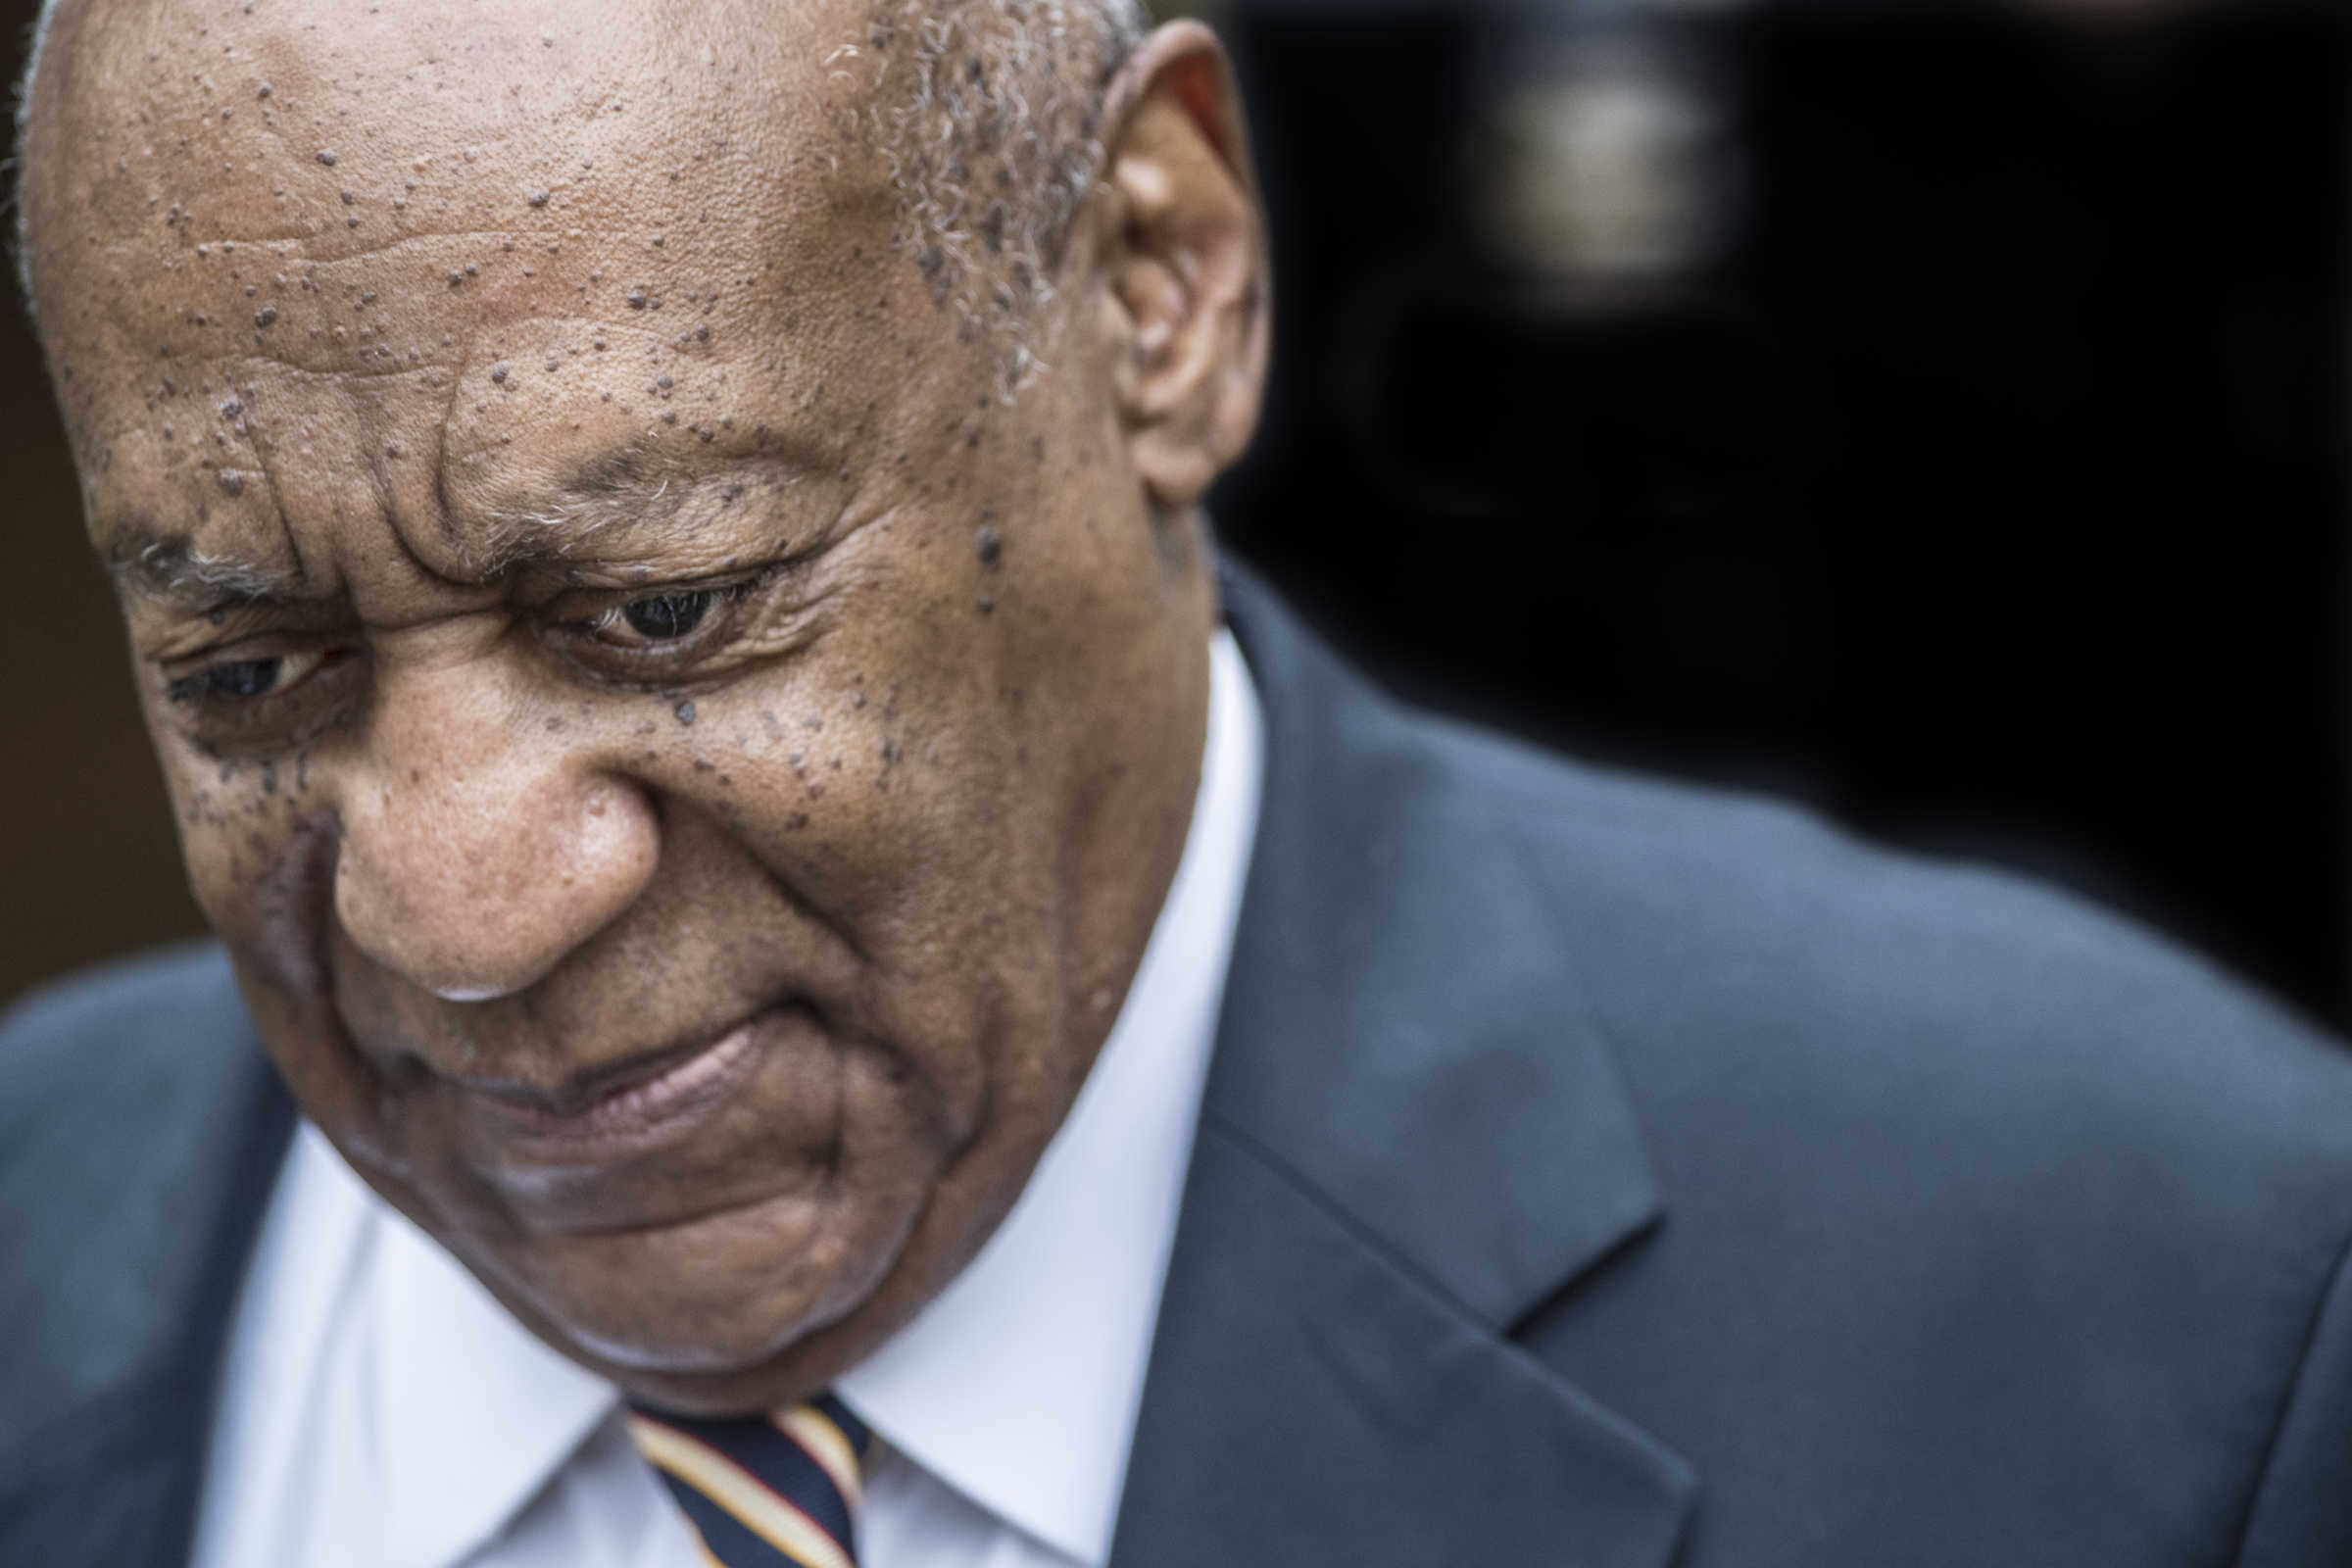 Bill Cosby walks up the sidewalk to the Montgomery County Courthouse on Wednesday June 14, 2017, the third day of jury deliberation in his sexual assault trial.